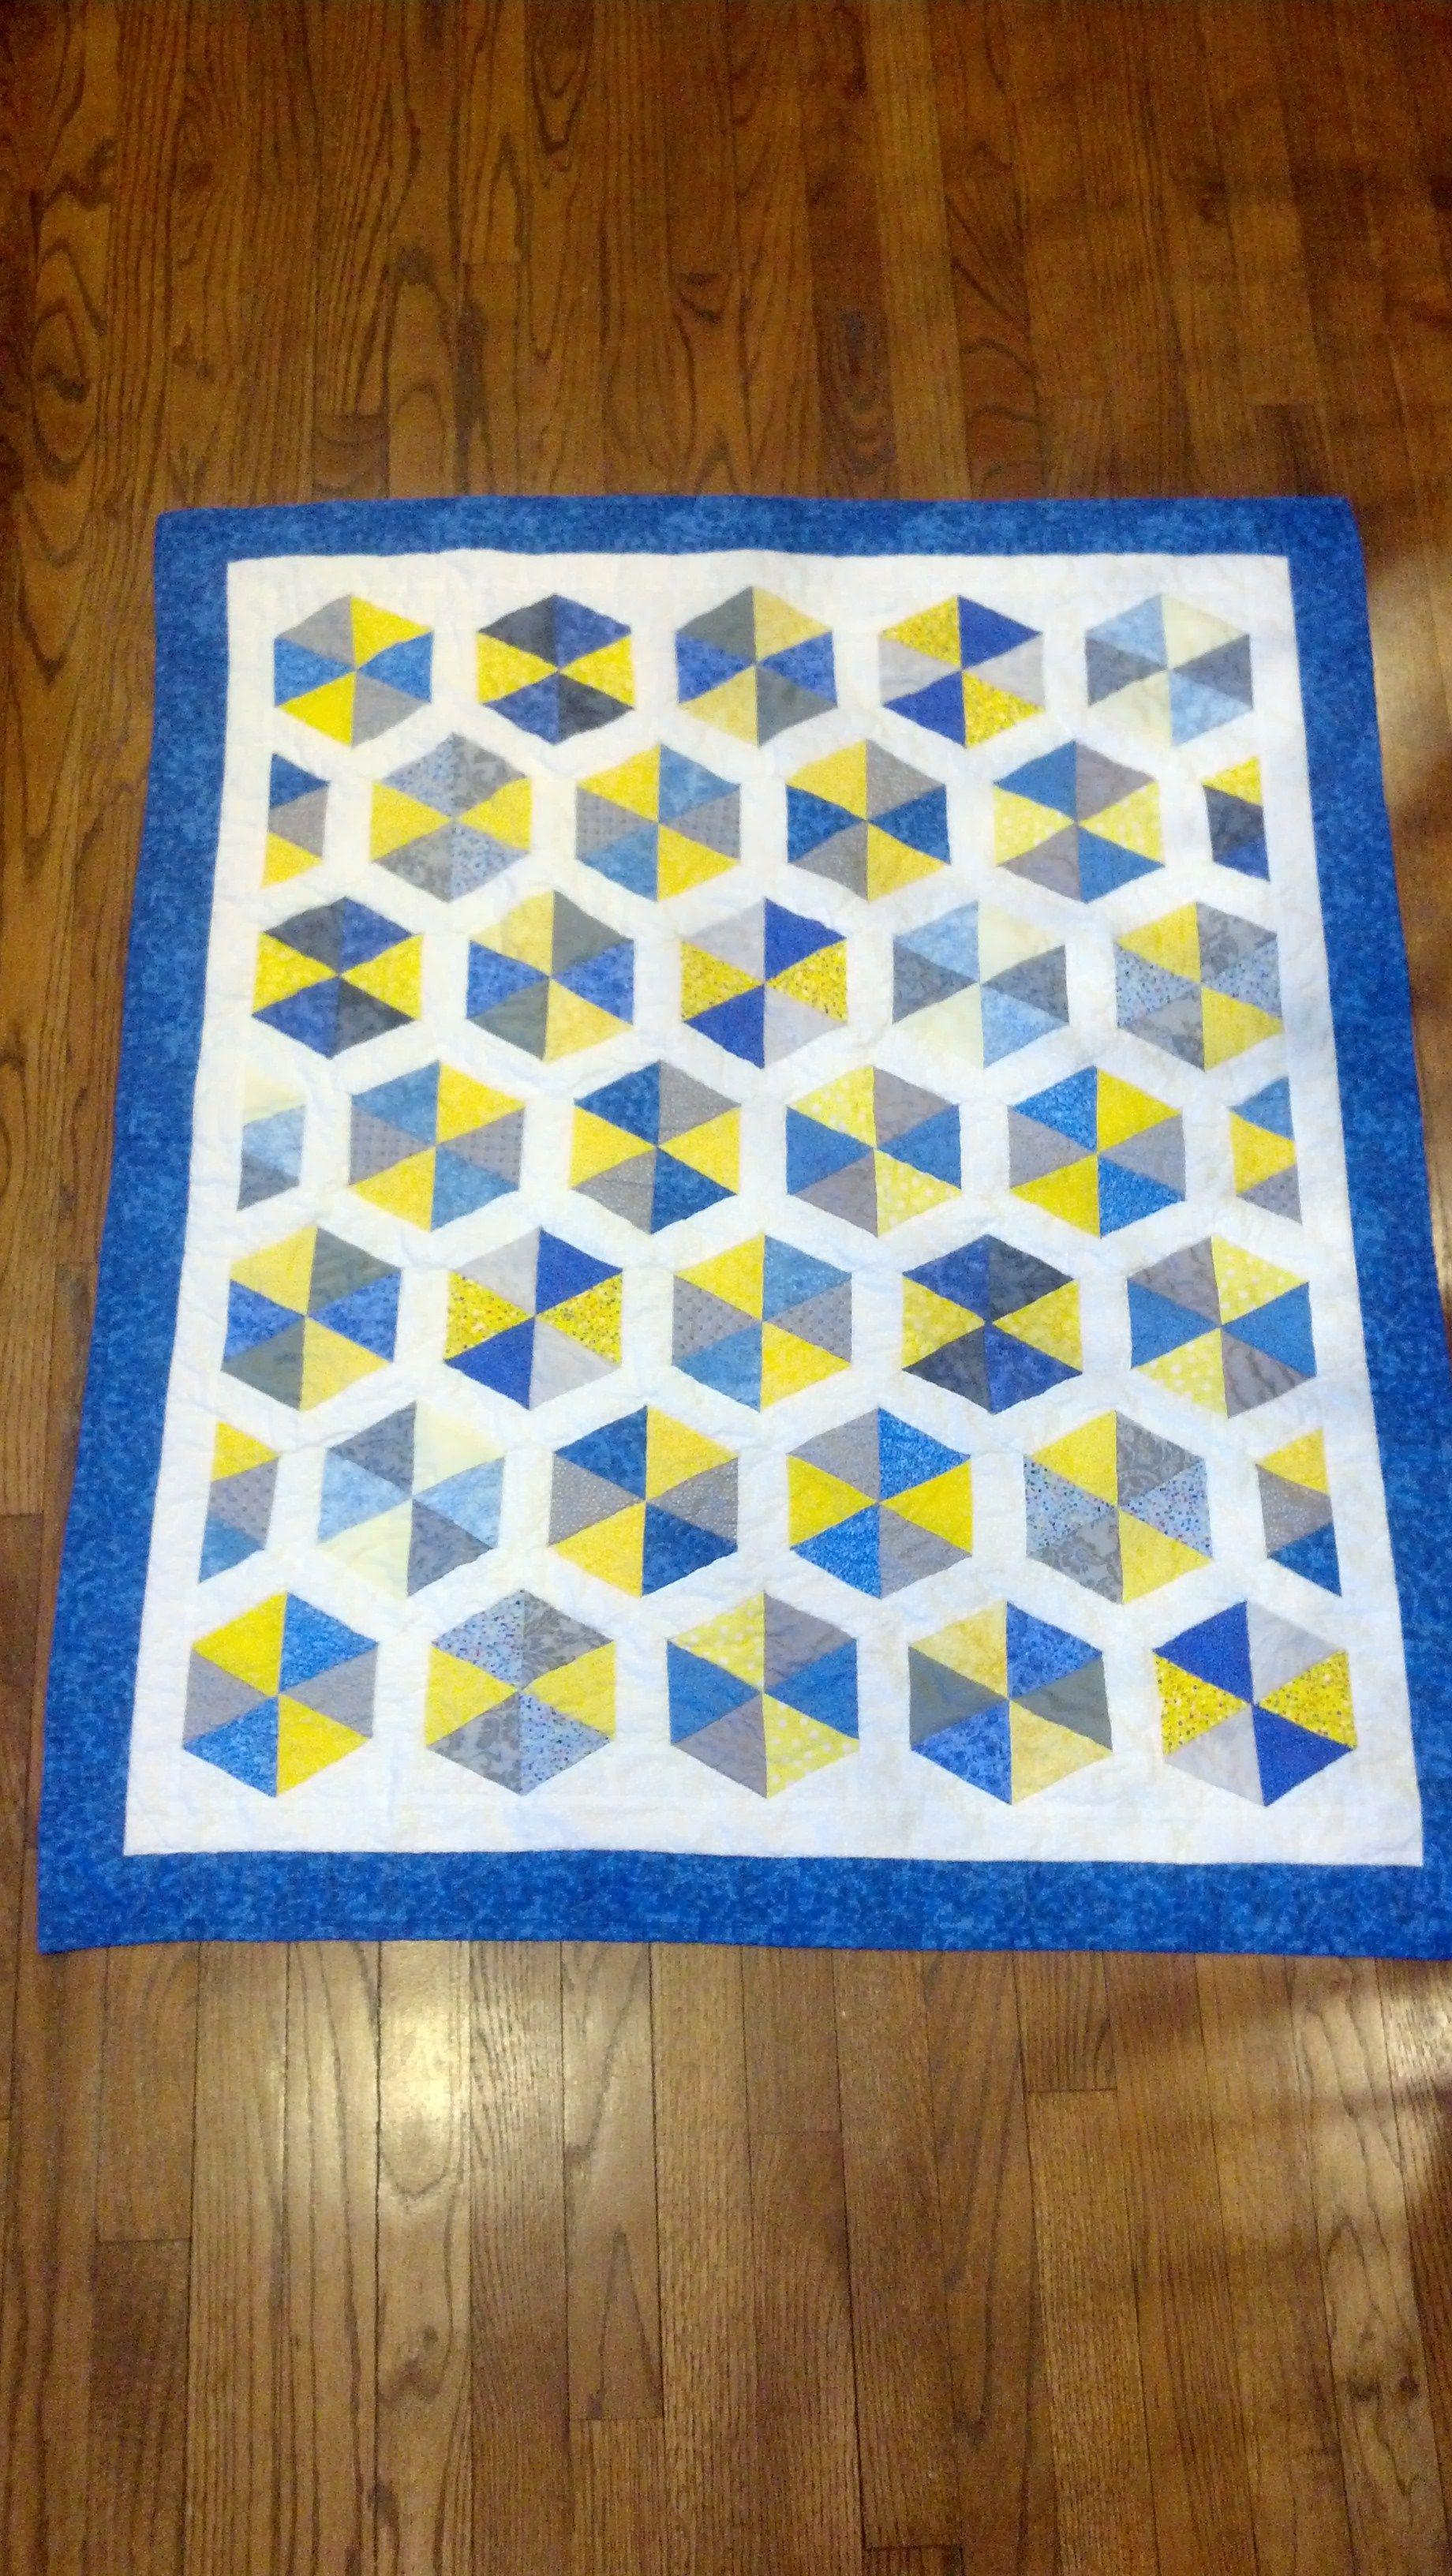 a hexagonal quilt for the great nephew